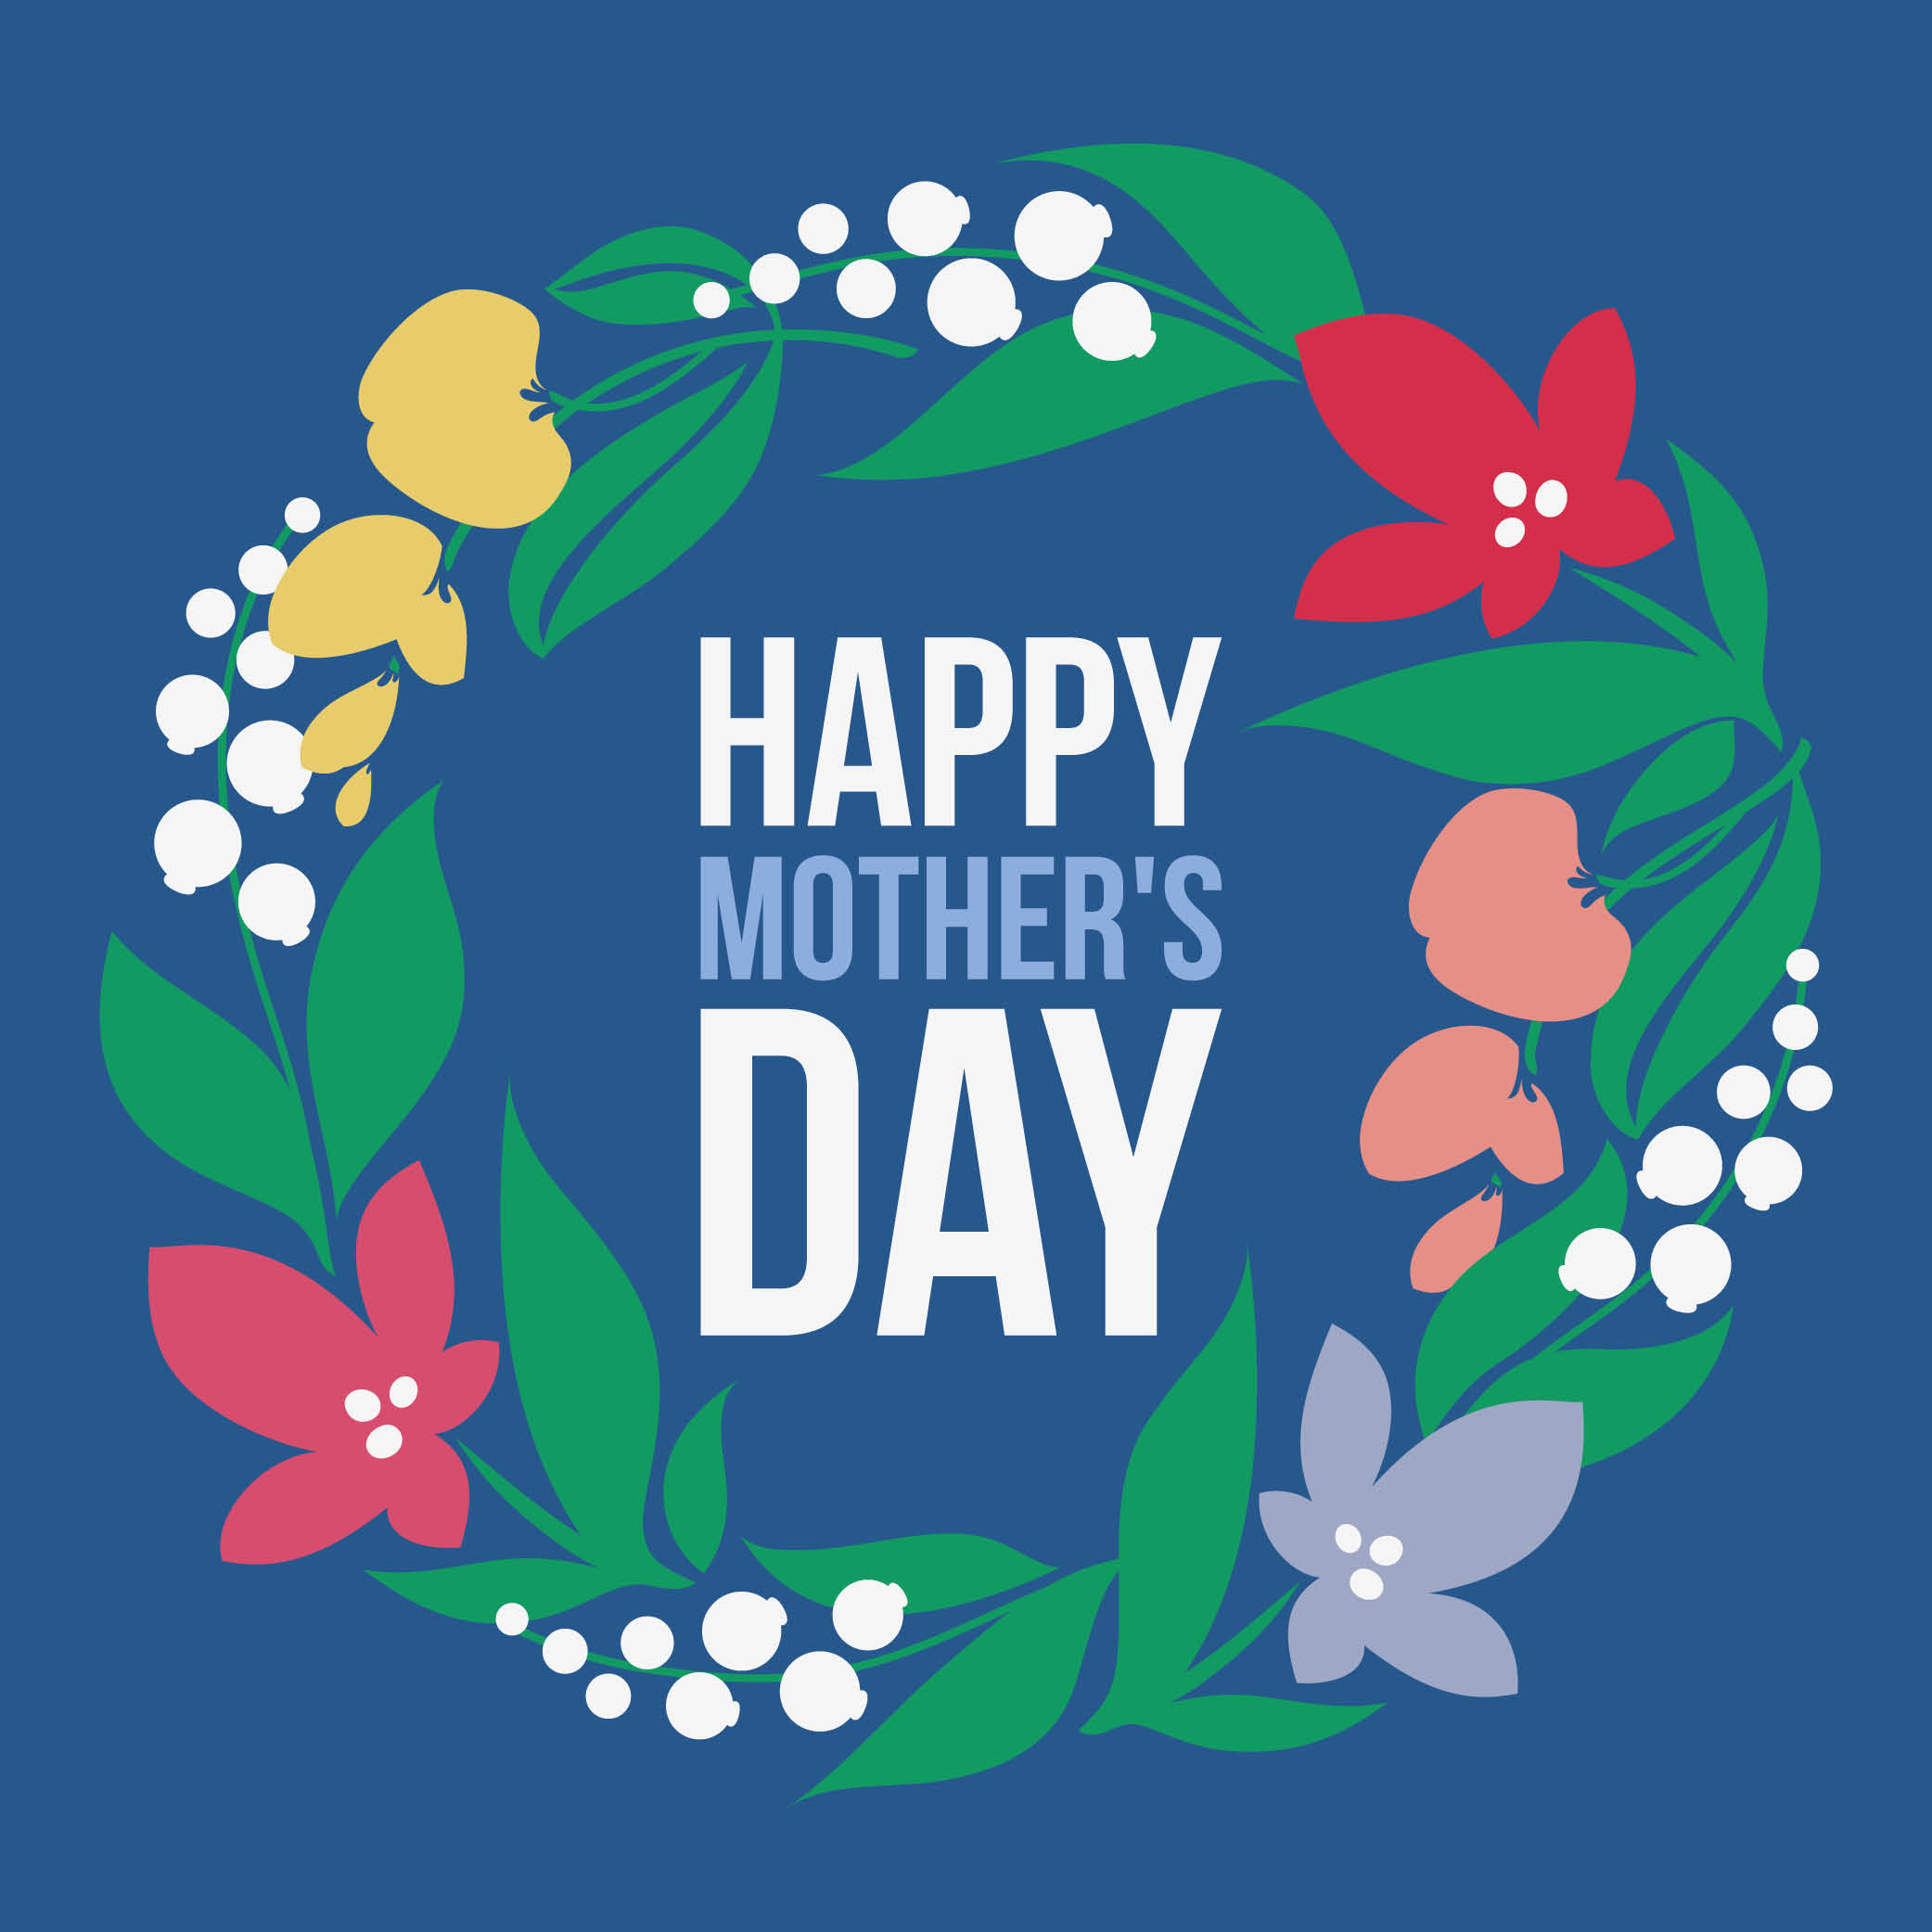 IFPOA_TributeBadge_FB_image_mothersDay_FNL.jpg